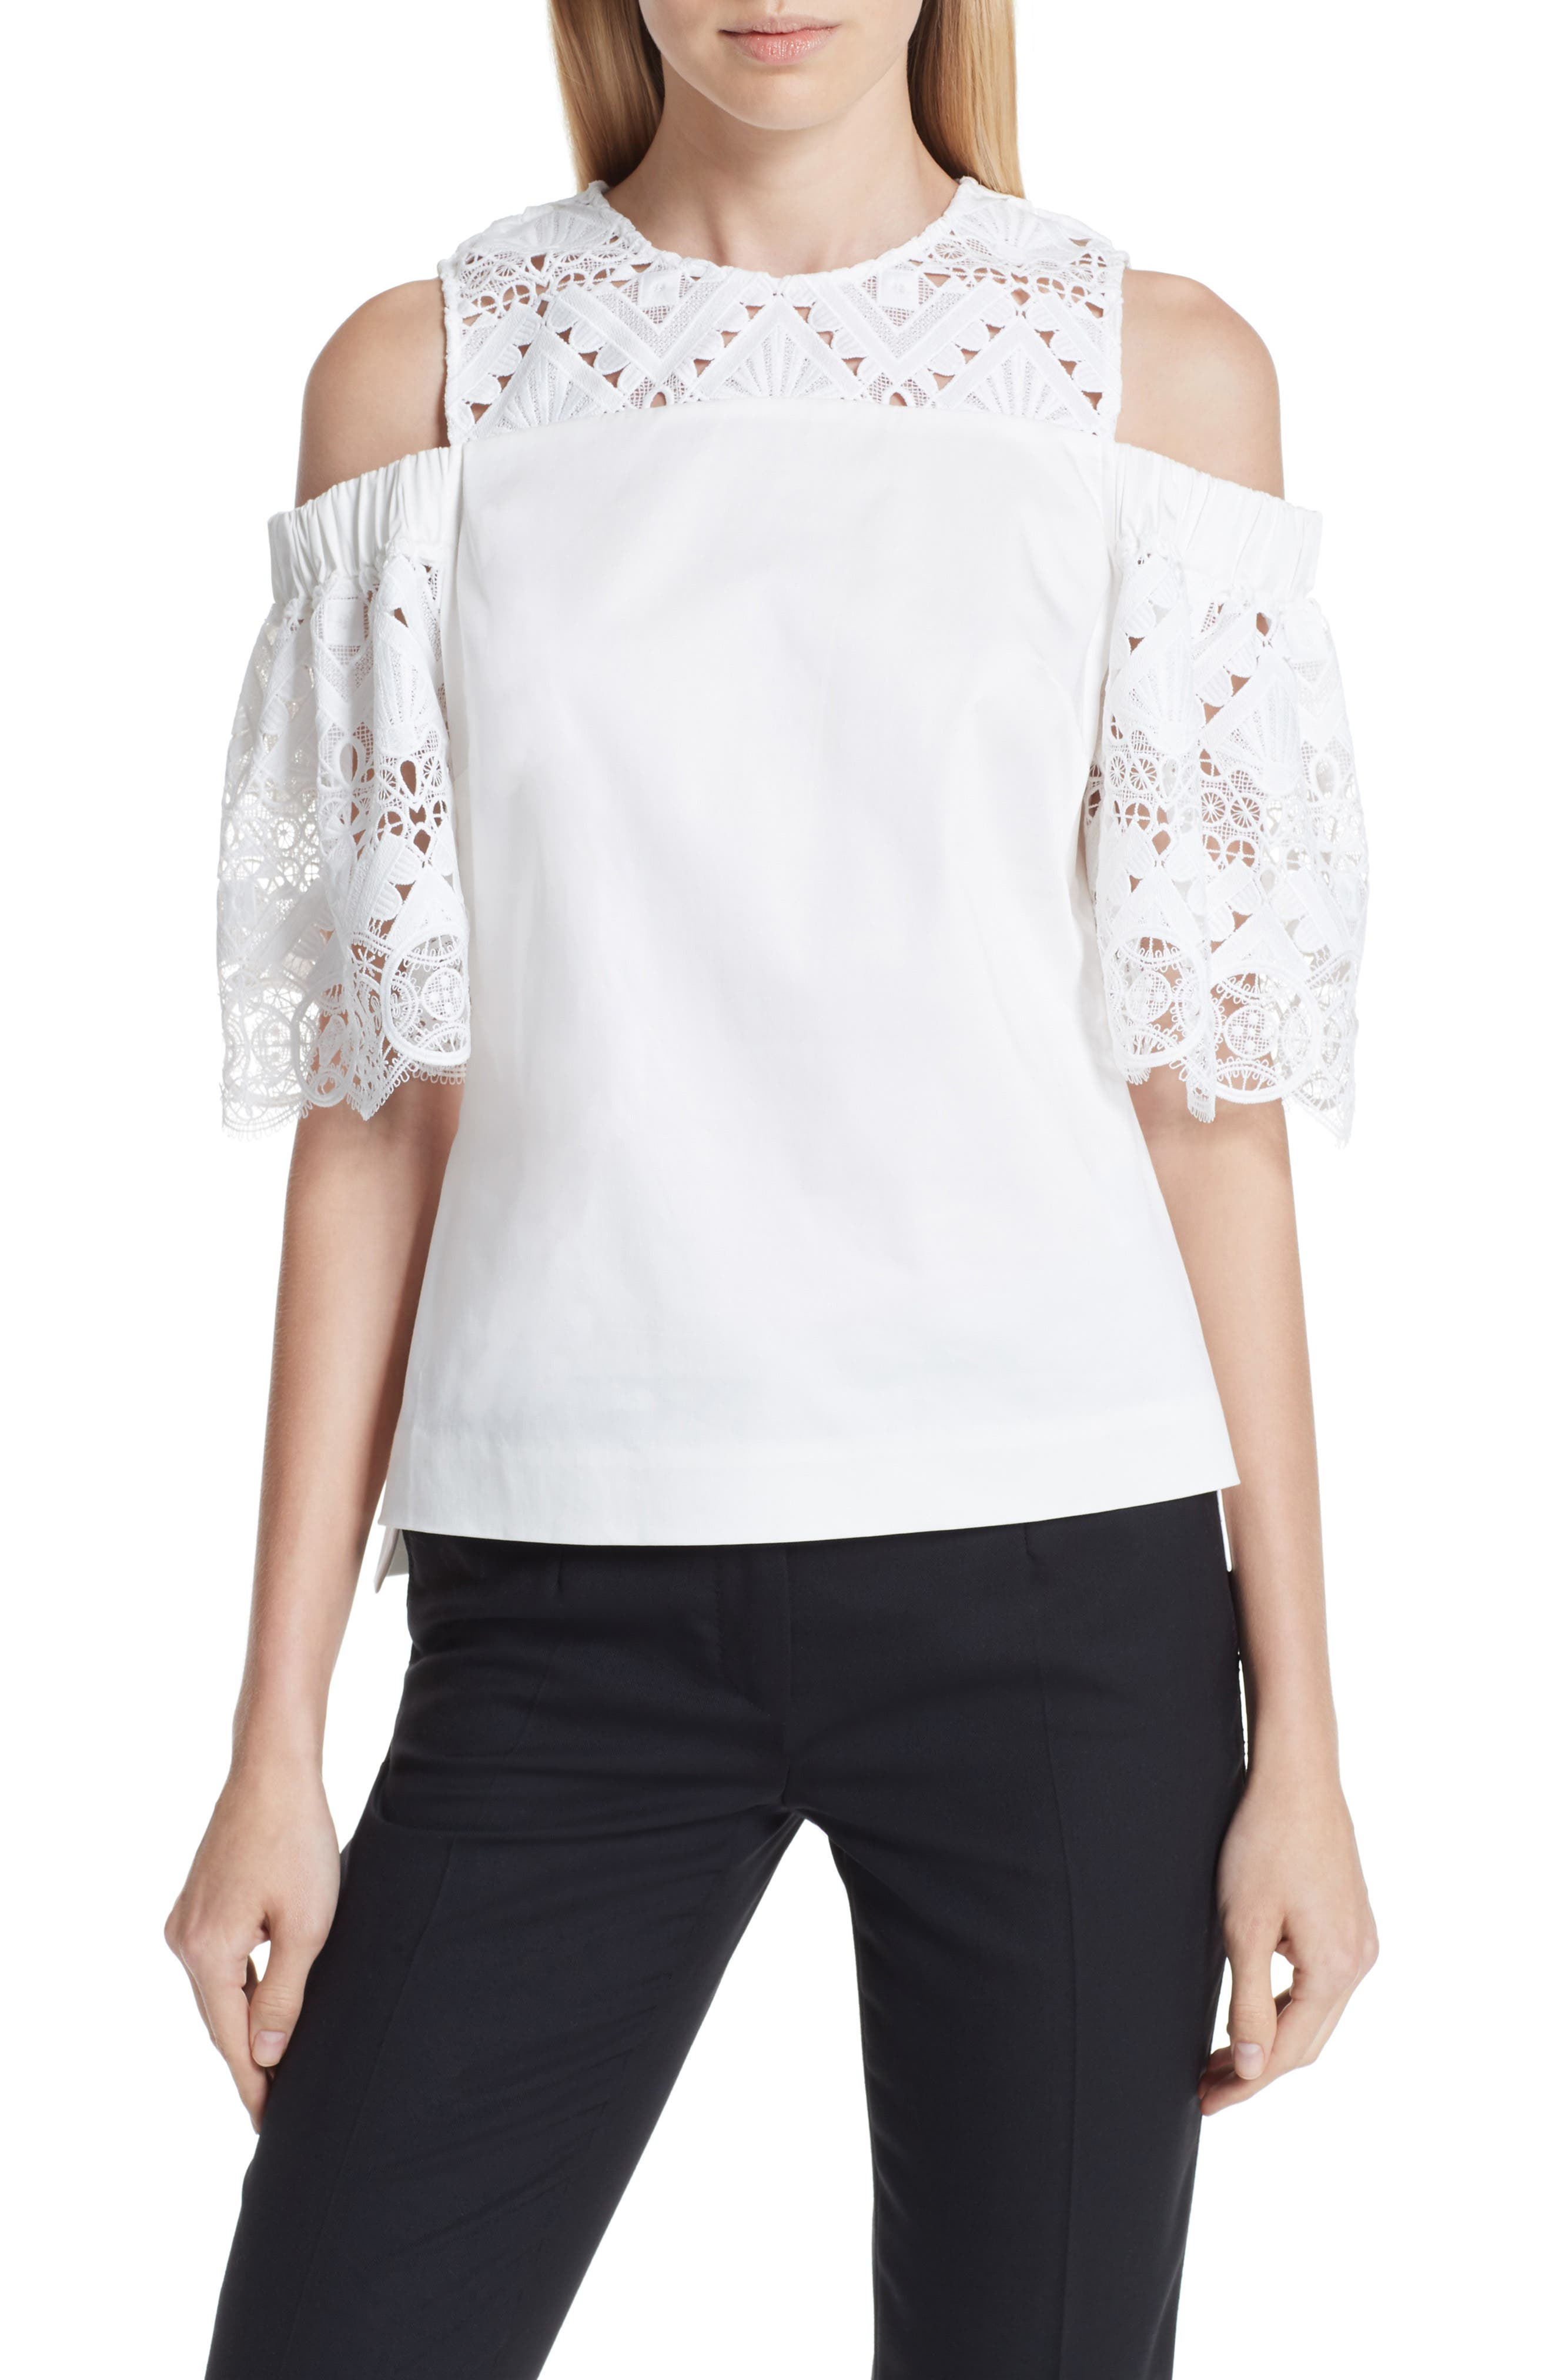 Taluah Mixed Lace Cold Shoulder Blouse,                             Main thumbnail 1, color,                             White